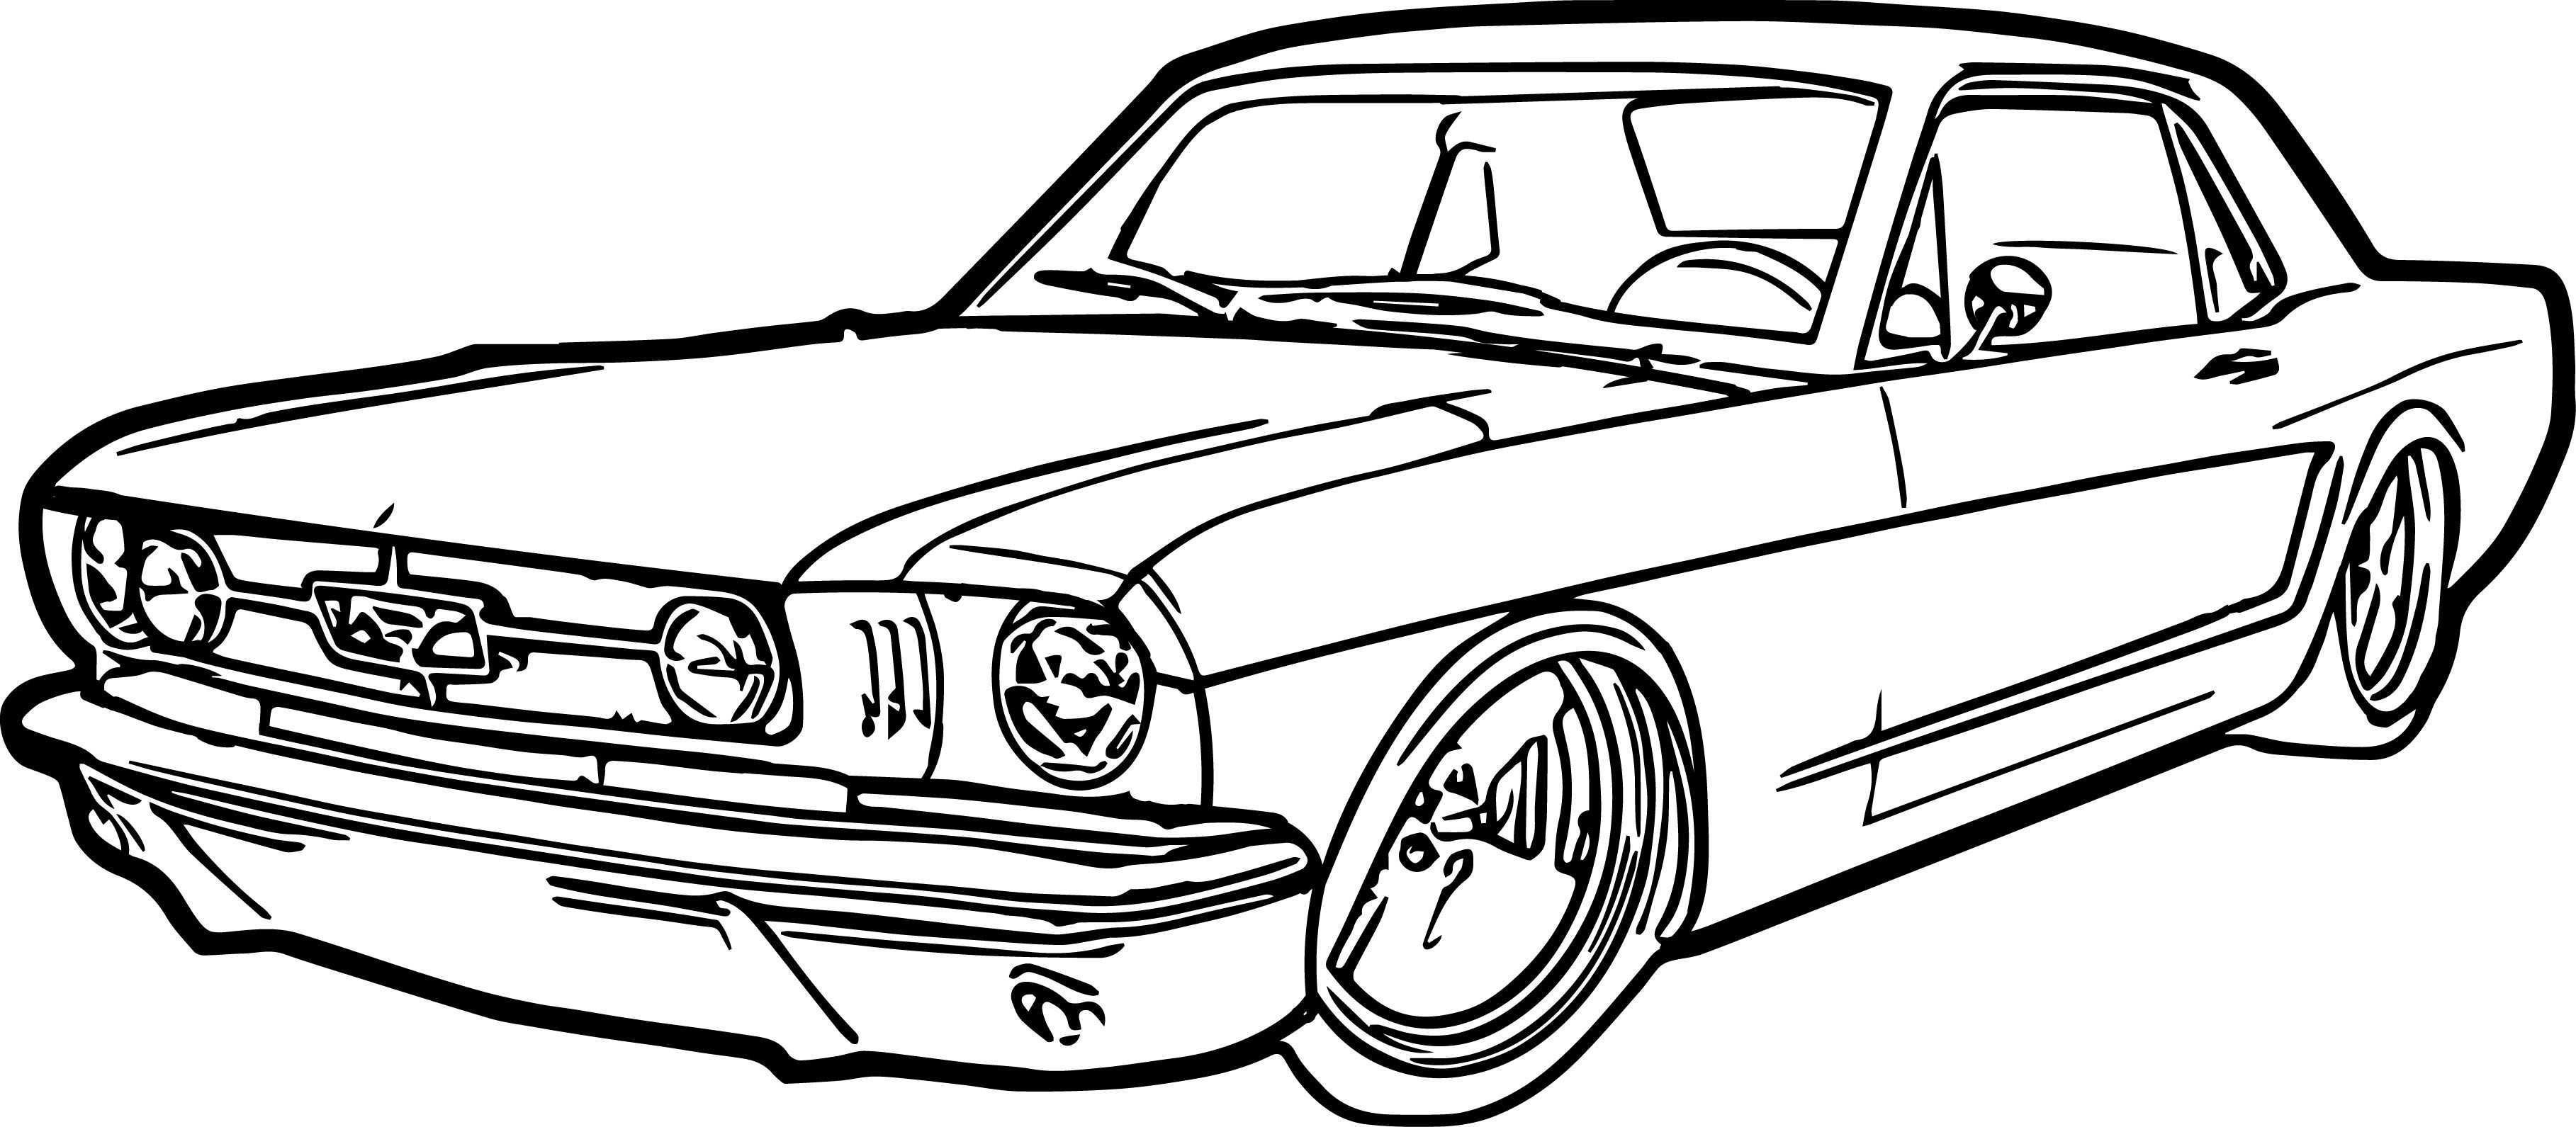 3635x1591 Fresh Classic Chevy Truck Coloring Pages Elegant Duane Koeberl